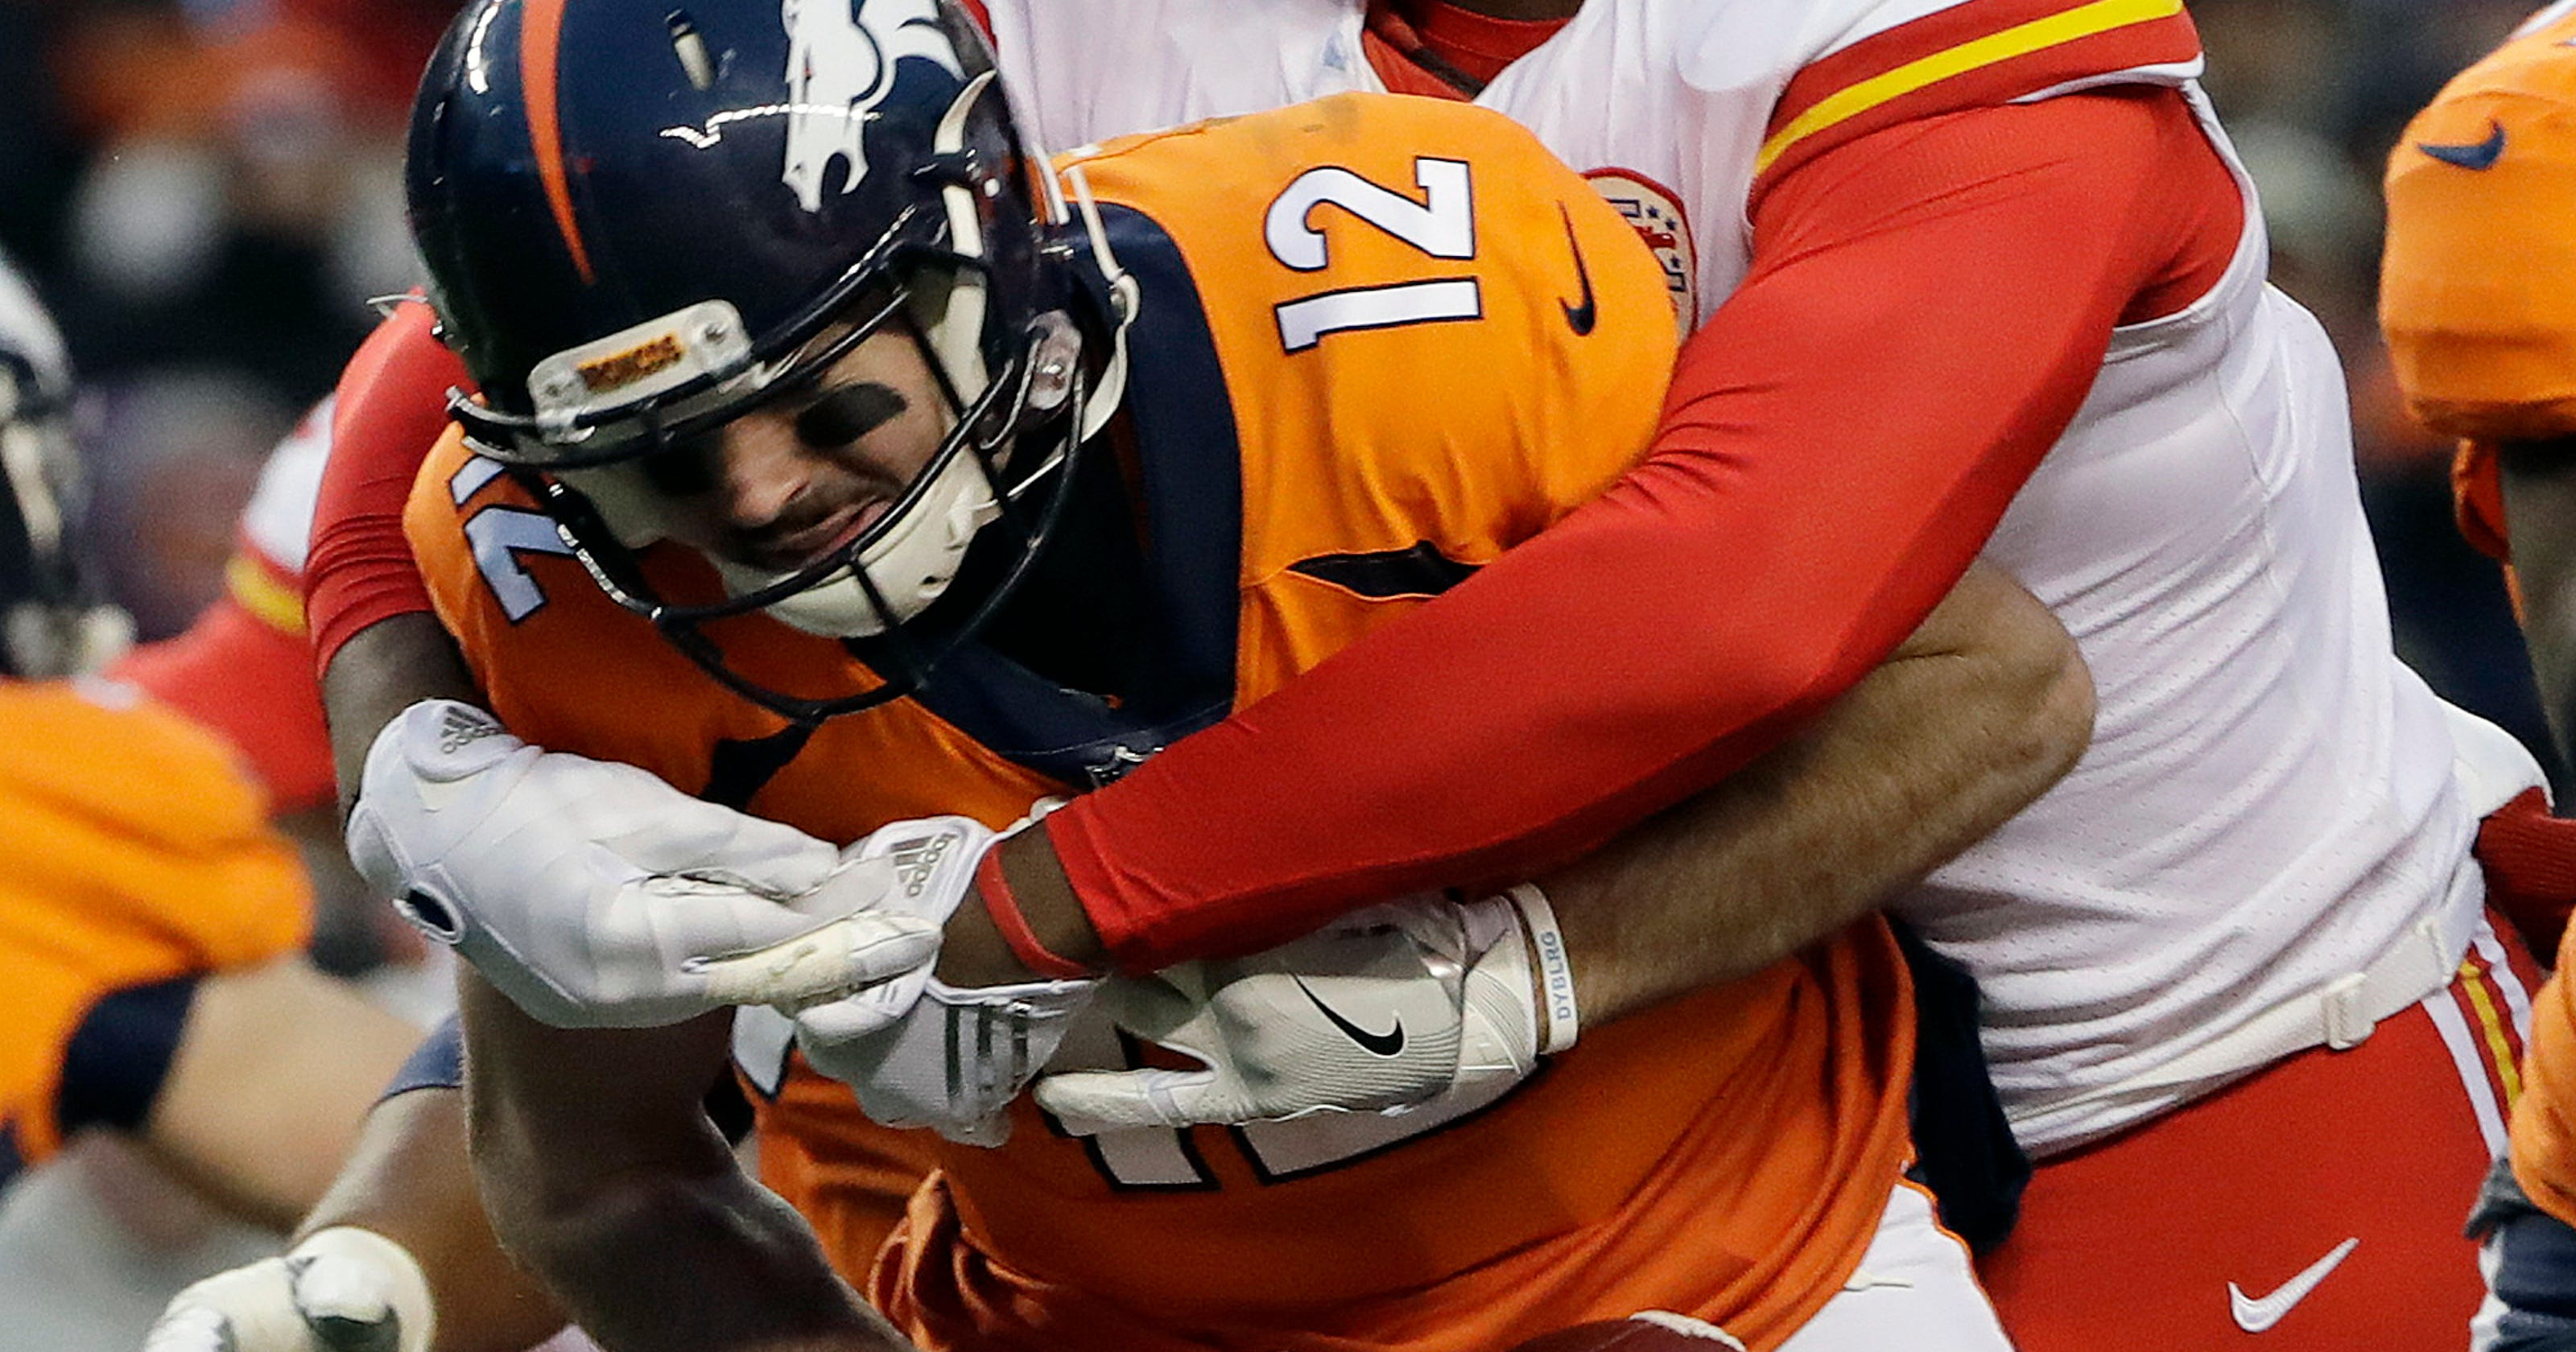 Mahomes leads Chiefs past Broncos 27-24 in 1st start cb46b3c1d